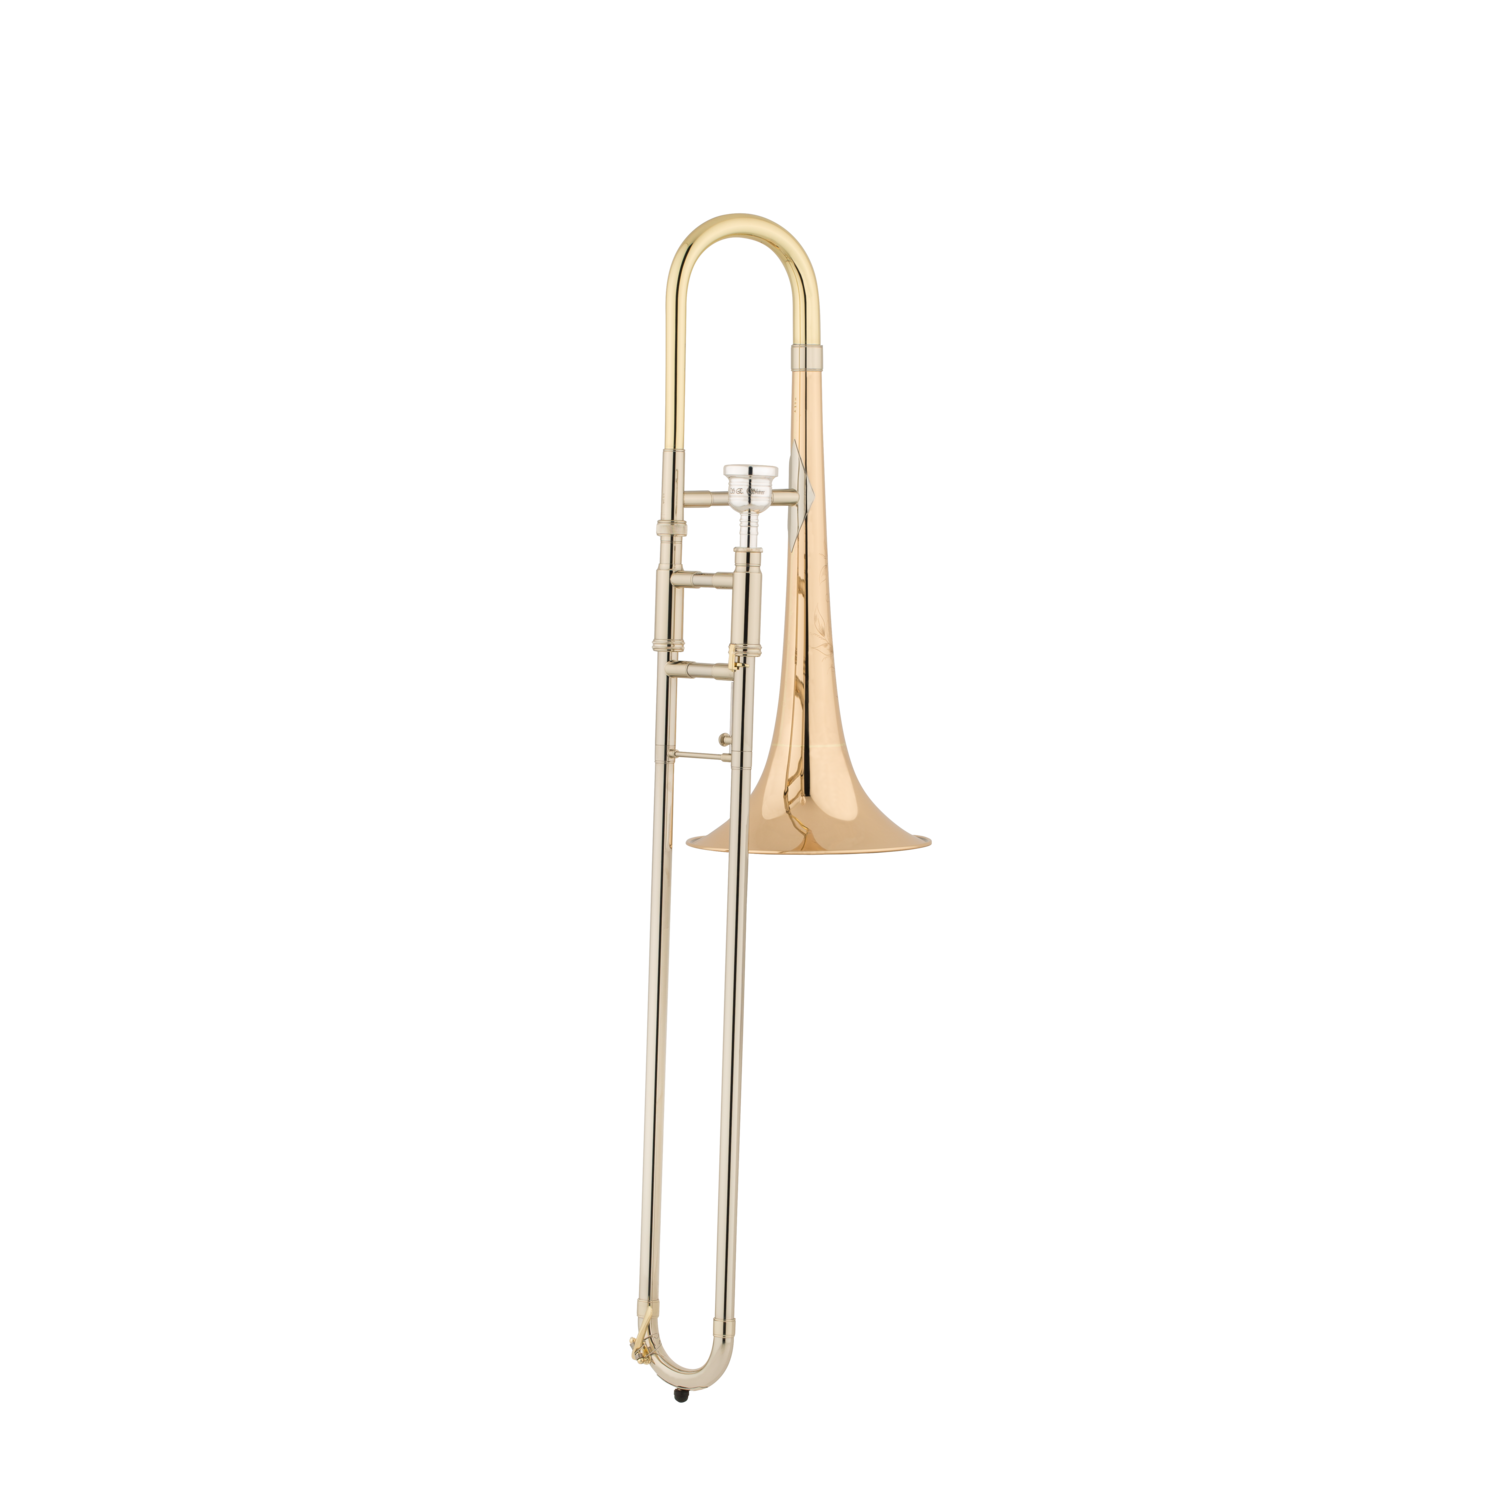 S.E. Shires - Model TBALTGM - Custom Medium Gold Alto Trombone-Trombone-S.E. Shires-Music Elements